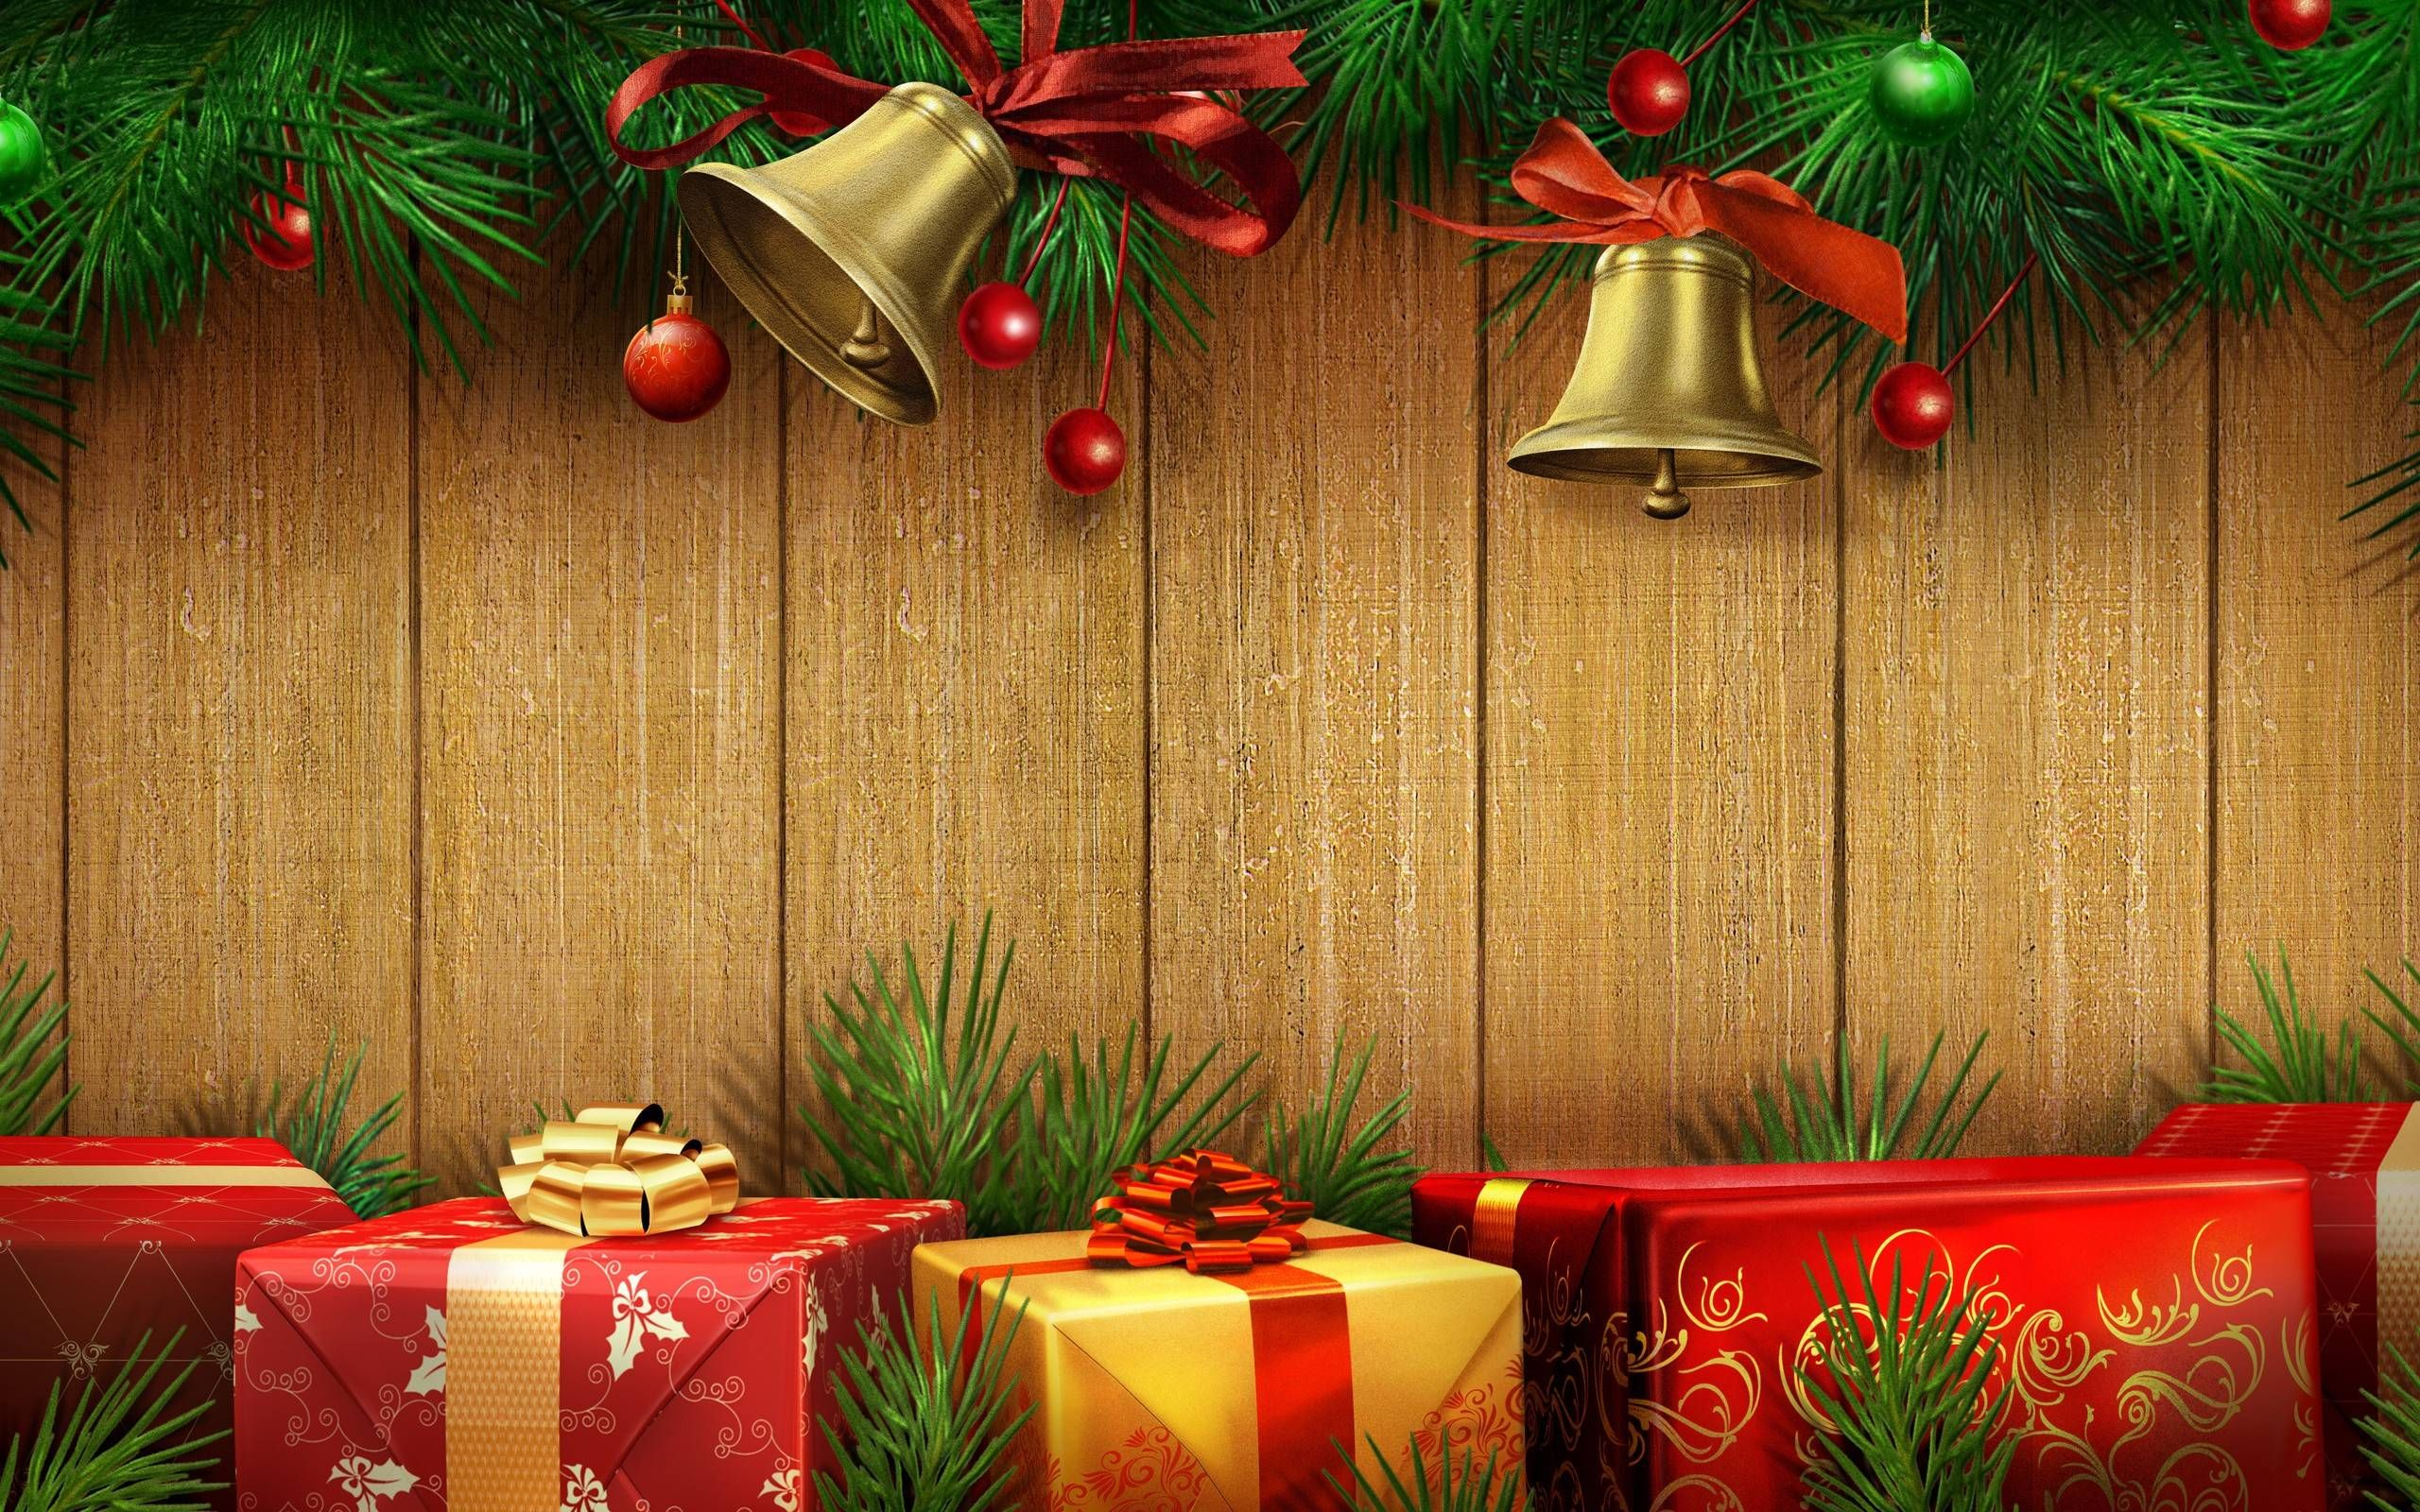 Christmas Gift Backgrounds Wallpaper